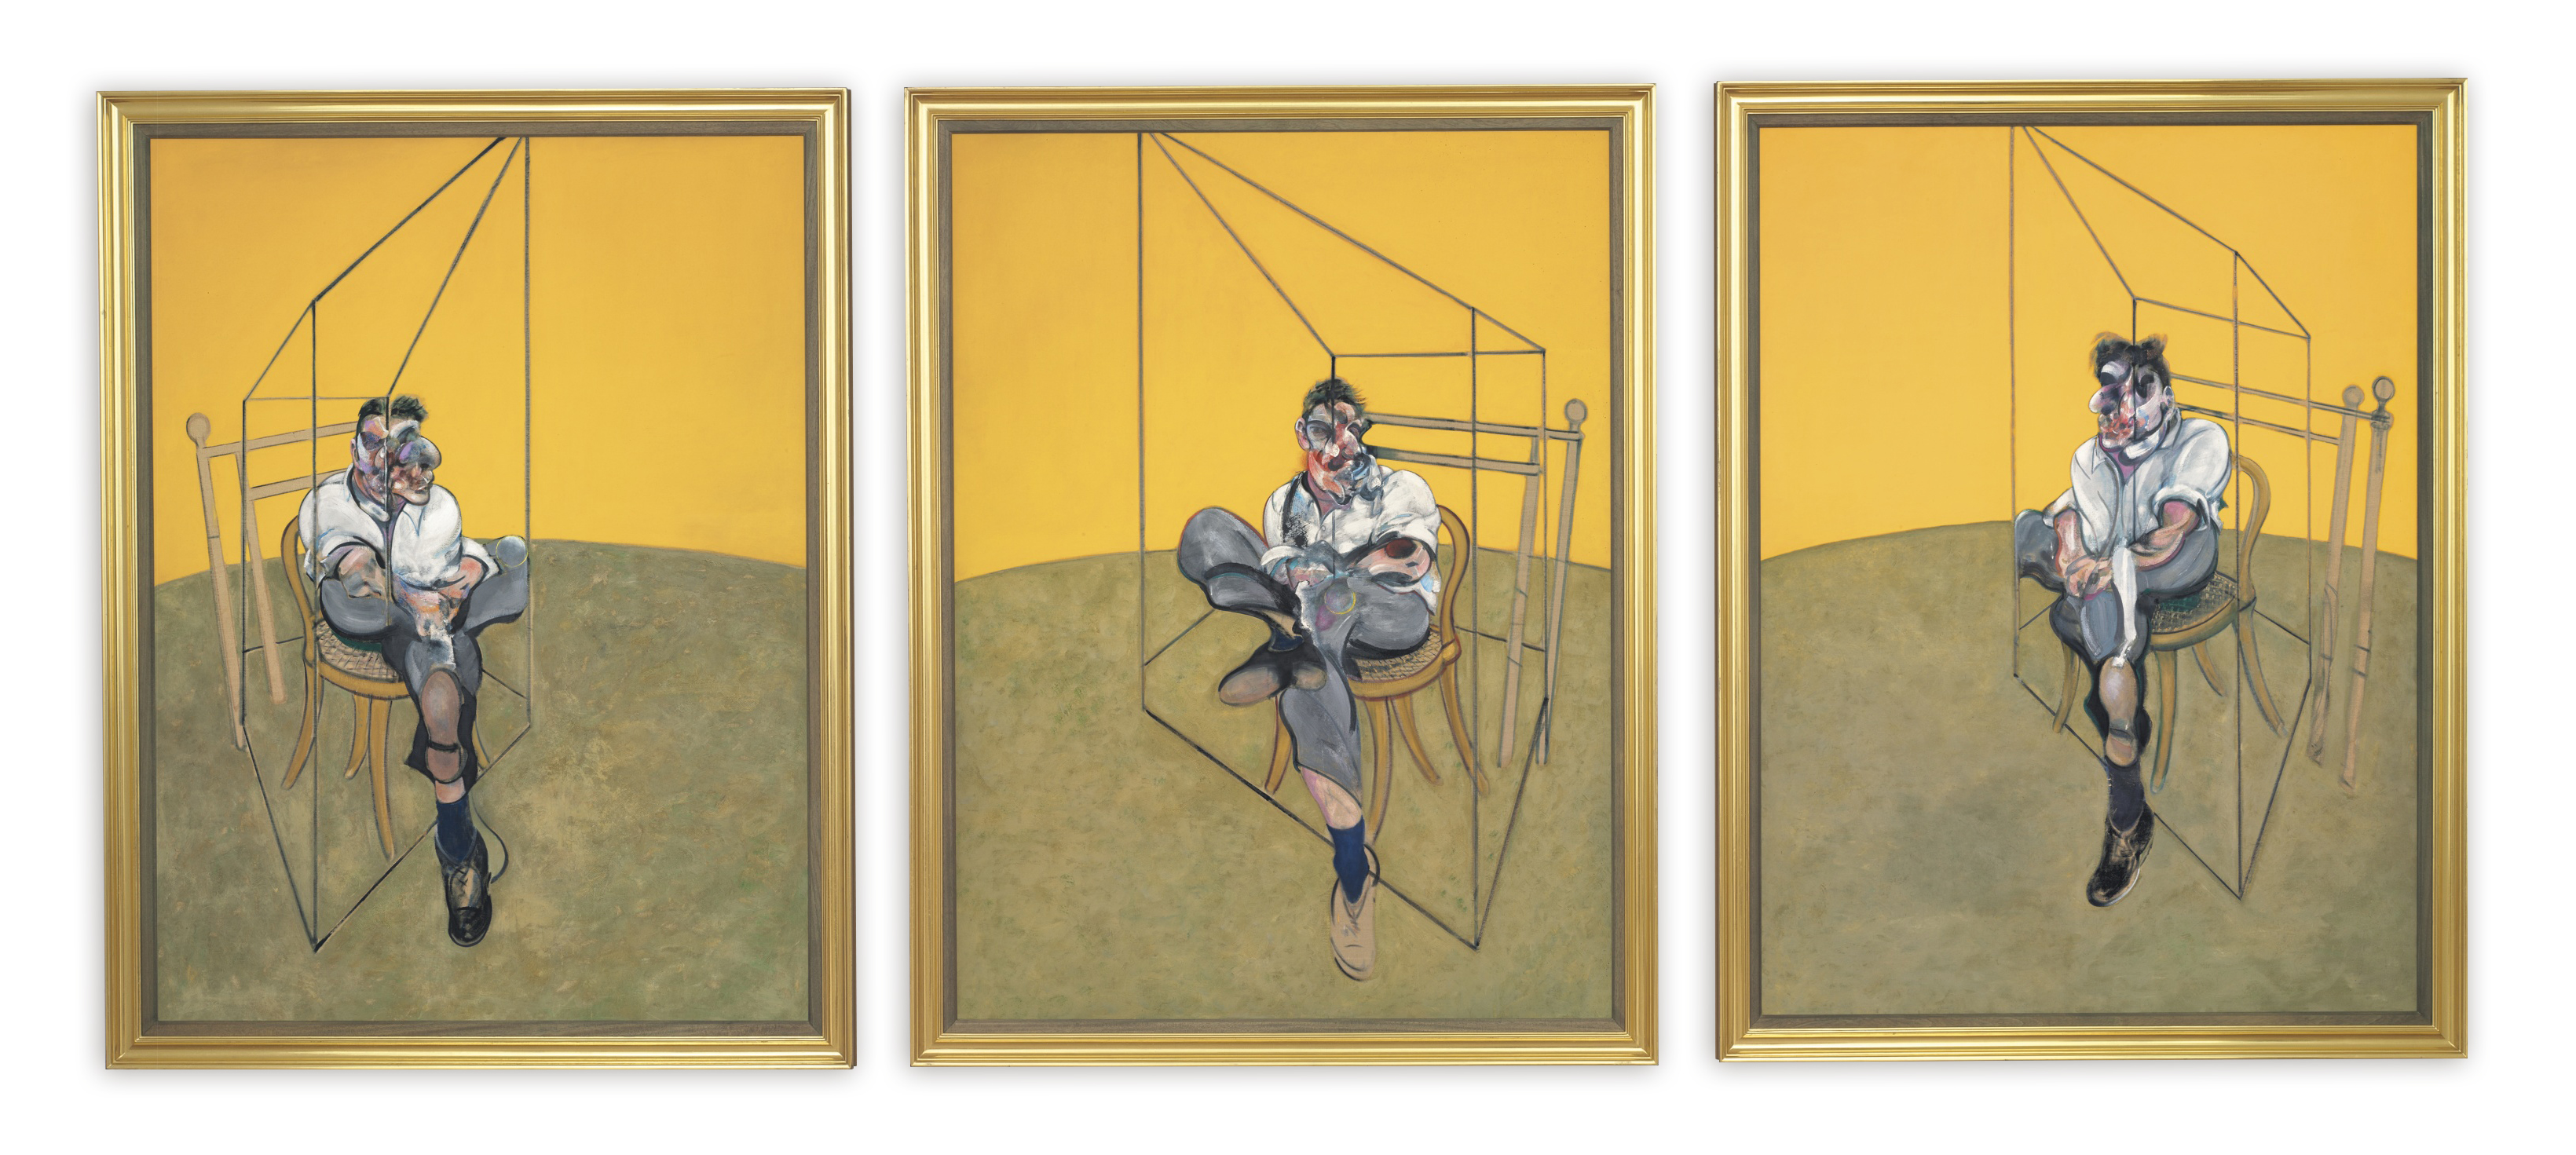 Dealing with Francis Bacon and all that money | Oregon ArtsWatch